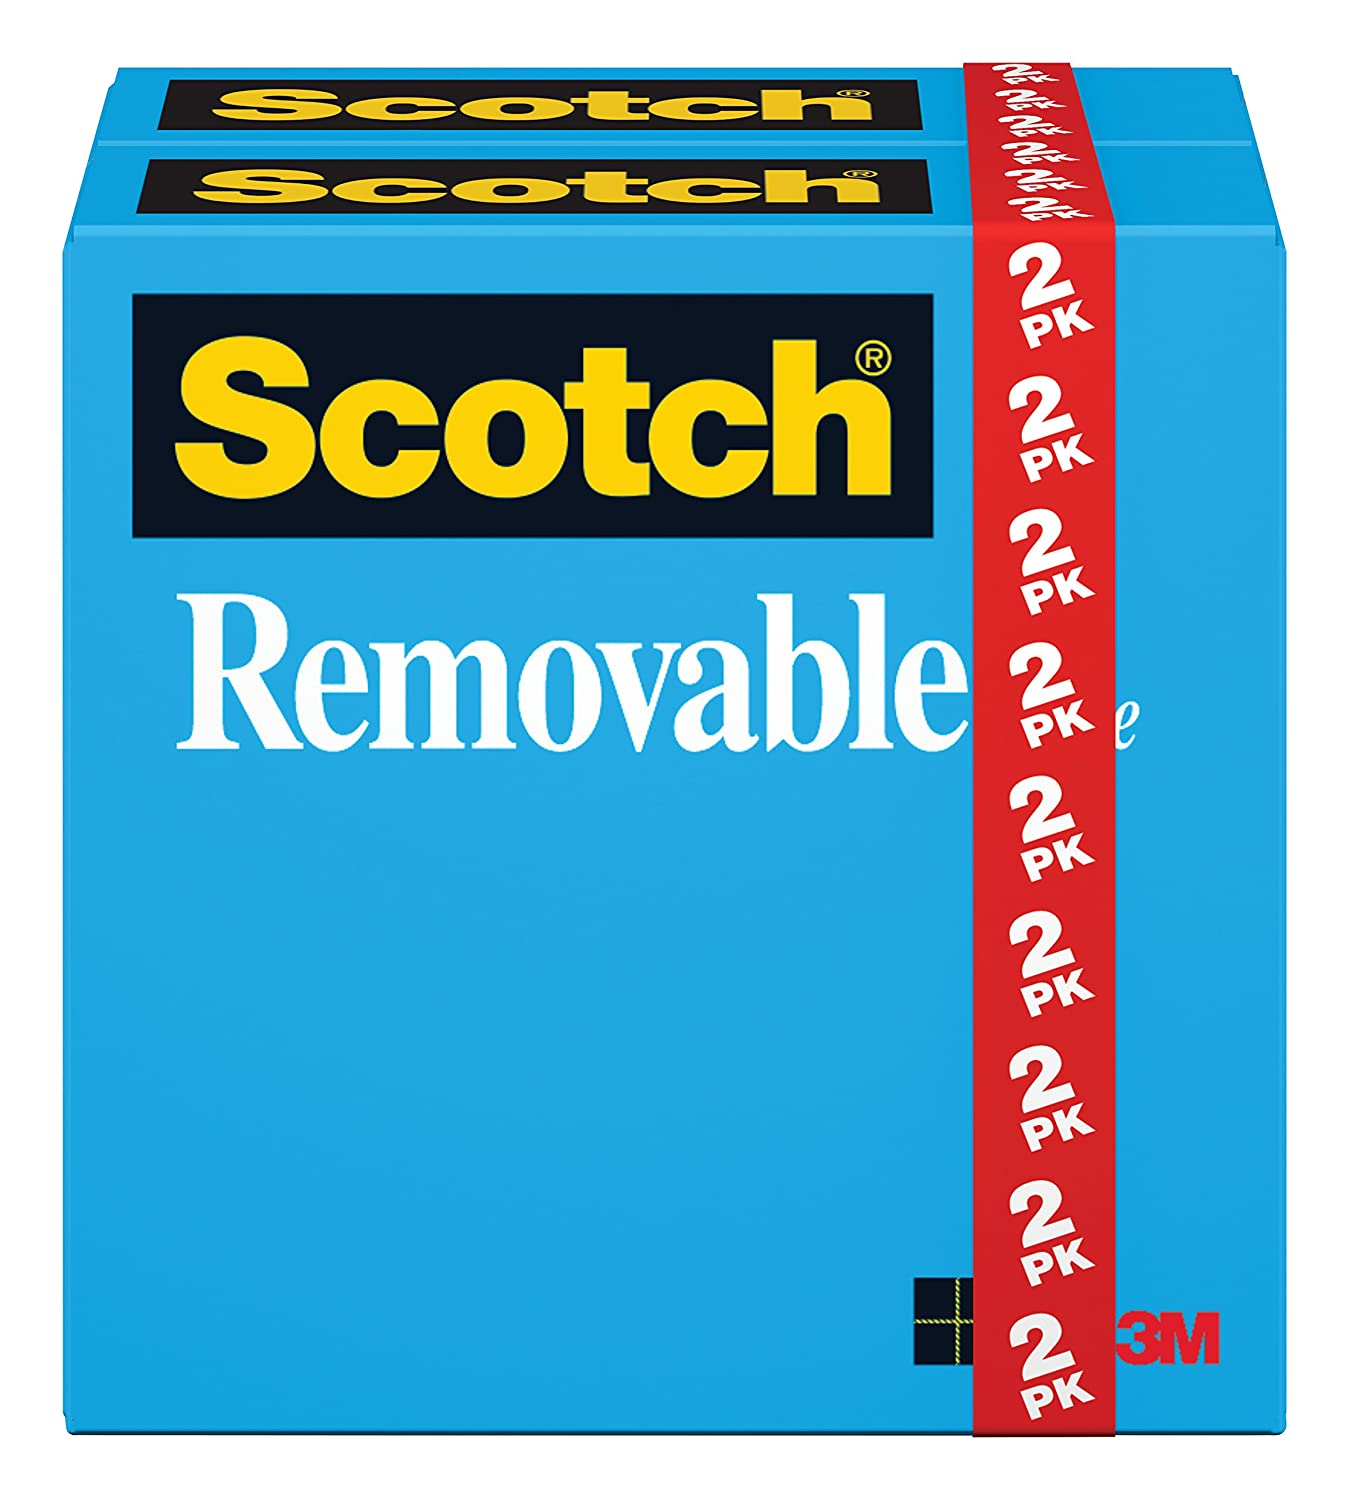 Scotch Removable Tape, Standard Width, Engineered for Displaying, Invisible, 3/4 x 1296 Inches, 2-Pack (811) 3M Office Products 811-2PK